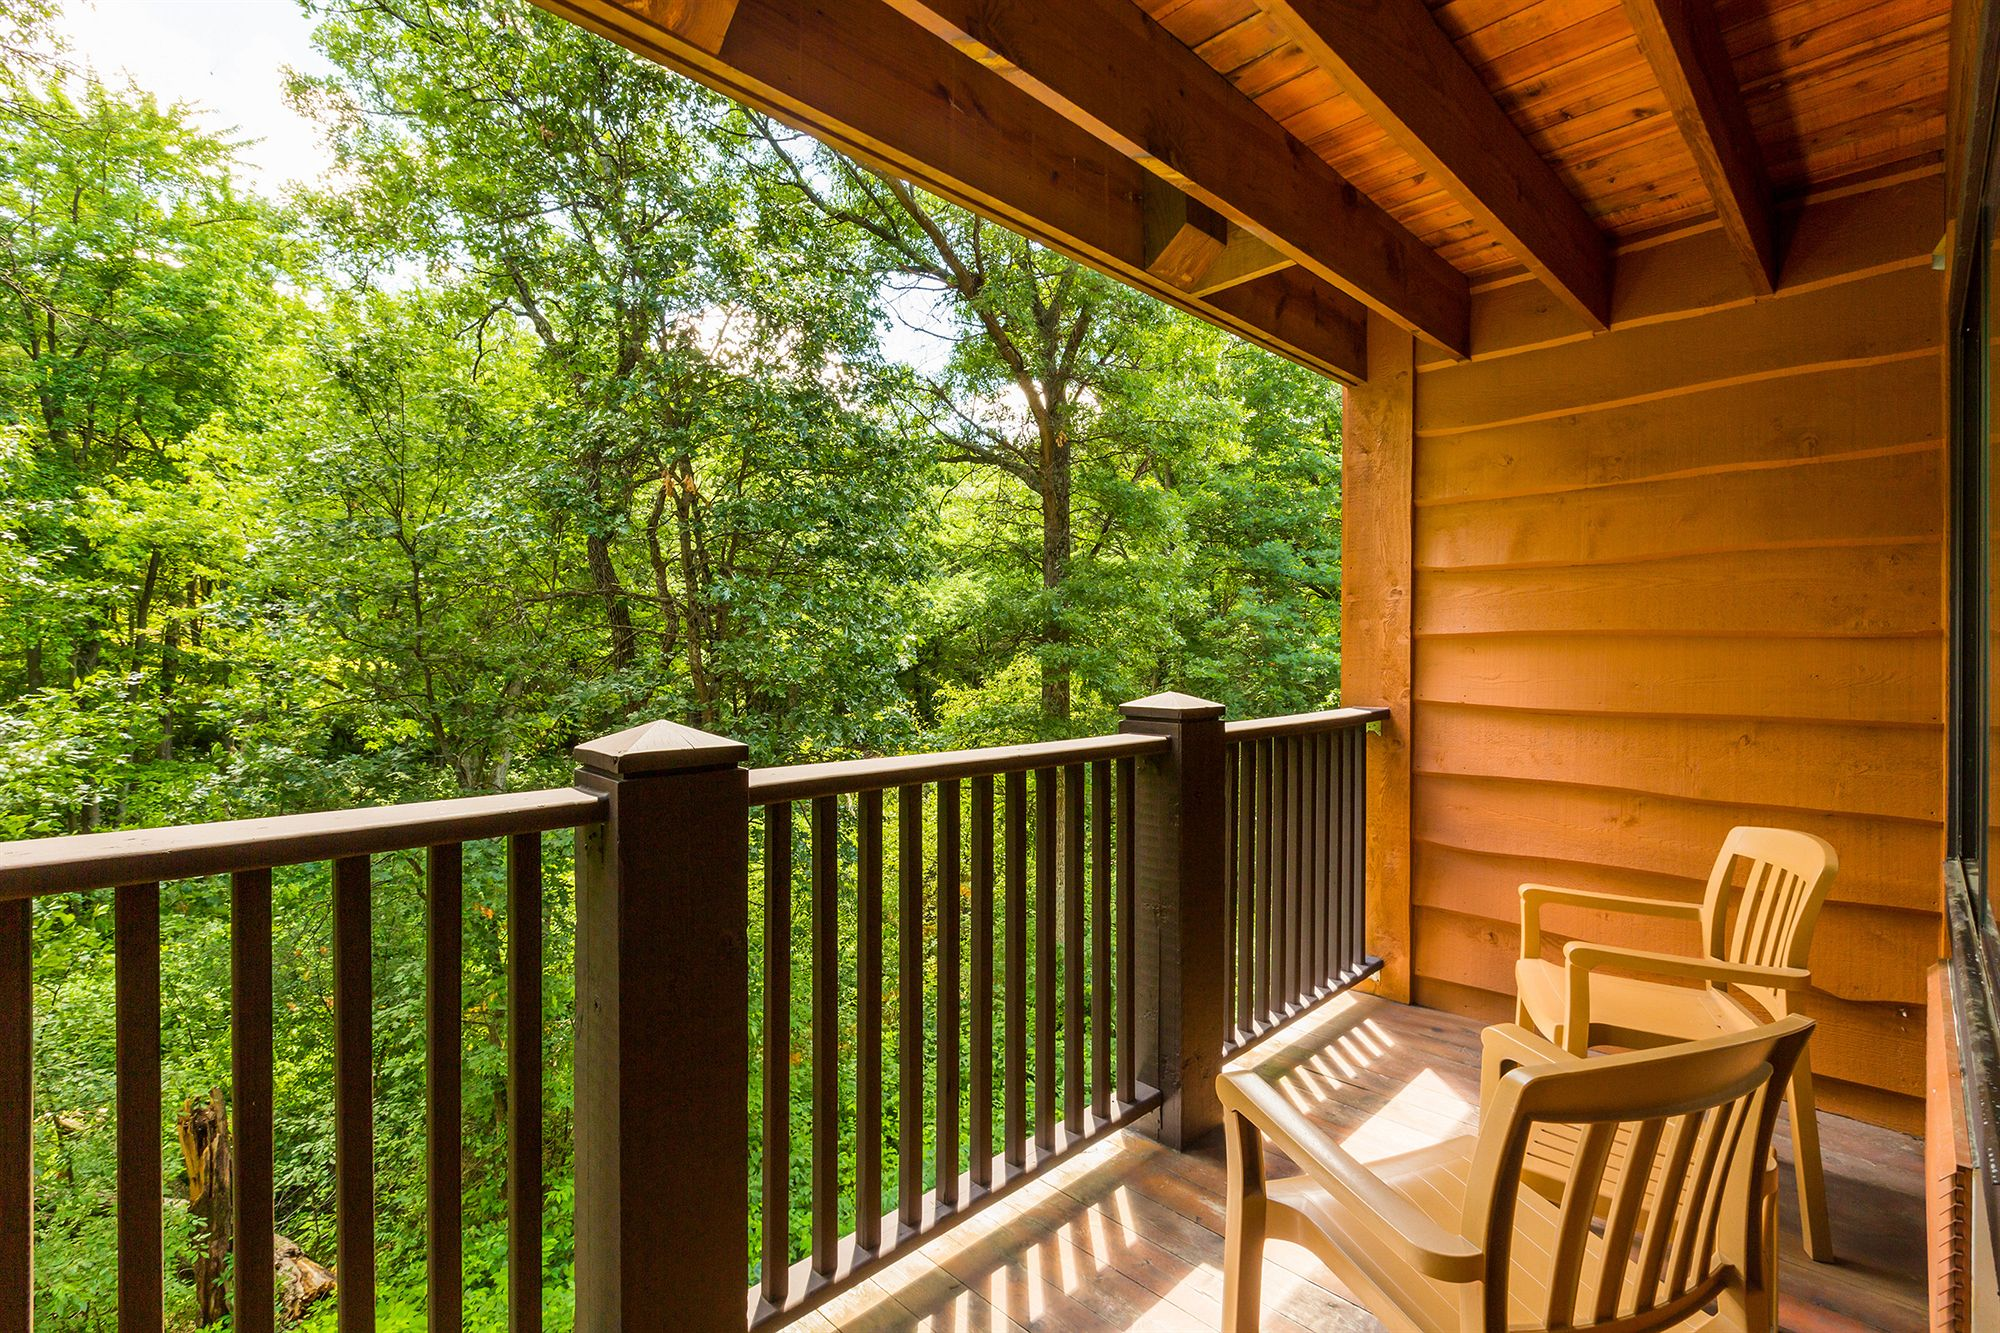 Wisconsin dells hotel coupons for wisconsin dells for Country porch coupon code